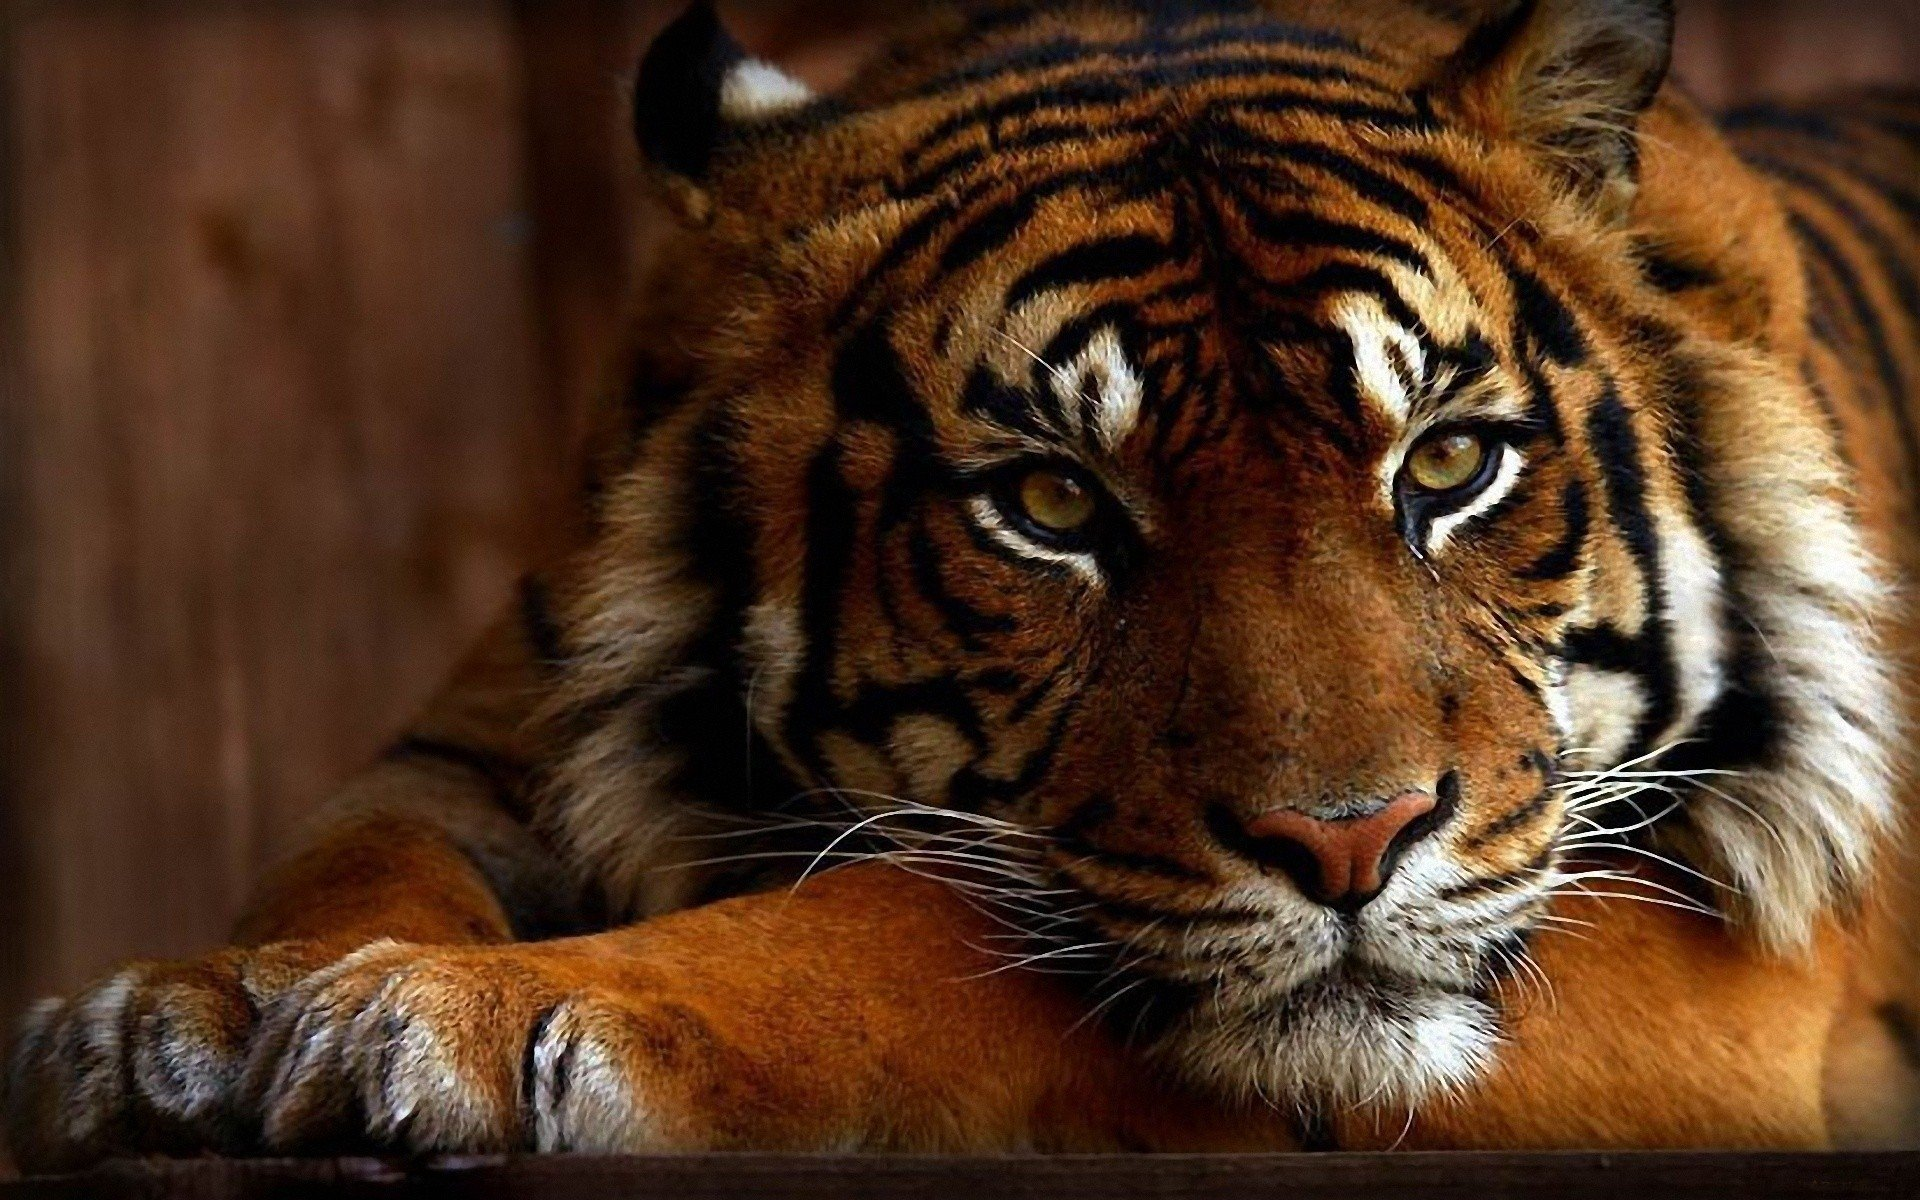 Animal - Tiger  Wallpaper